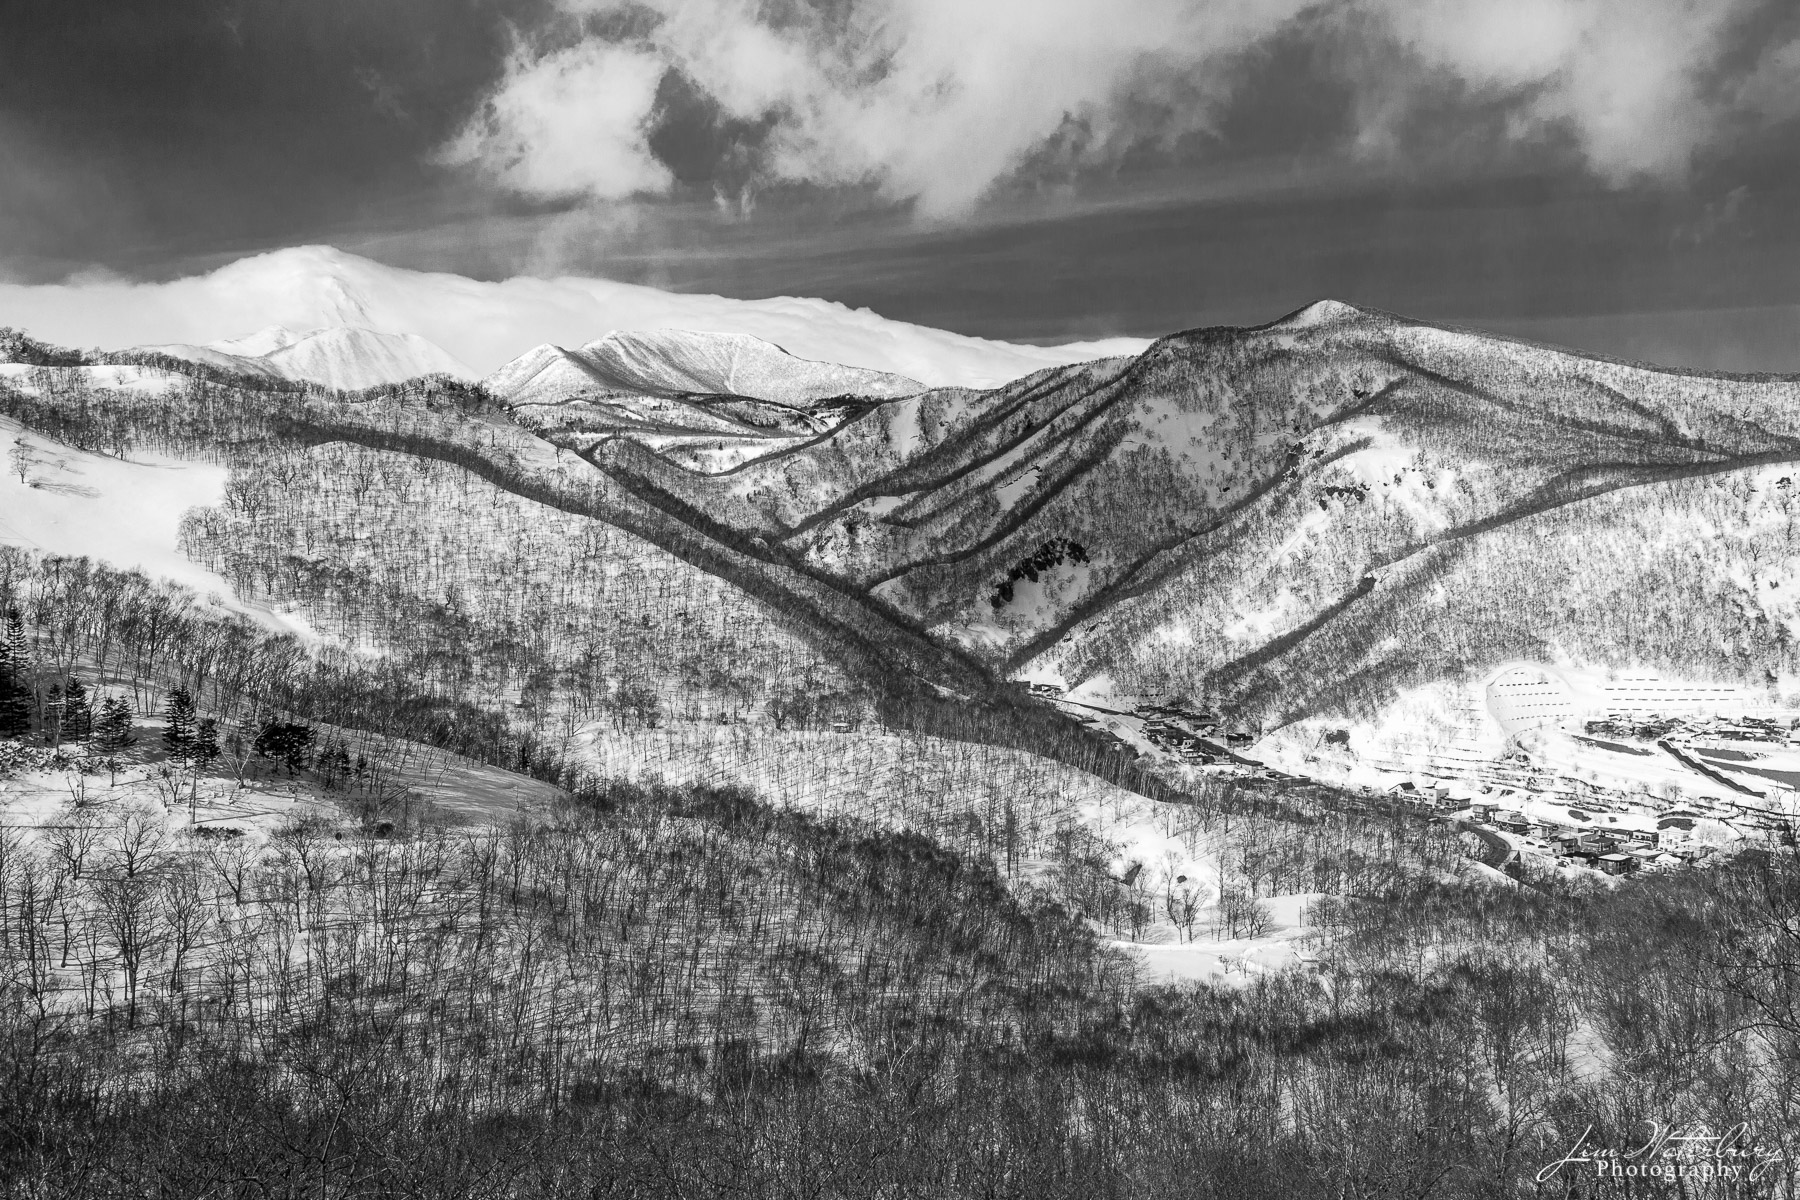 Black & white image of tree and snow-covered mountains in northern Hokkaido, Japan, with a bank of clouds above.